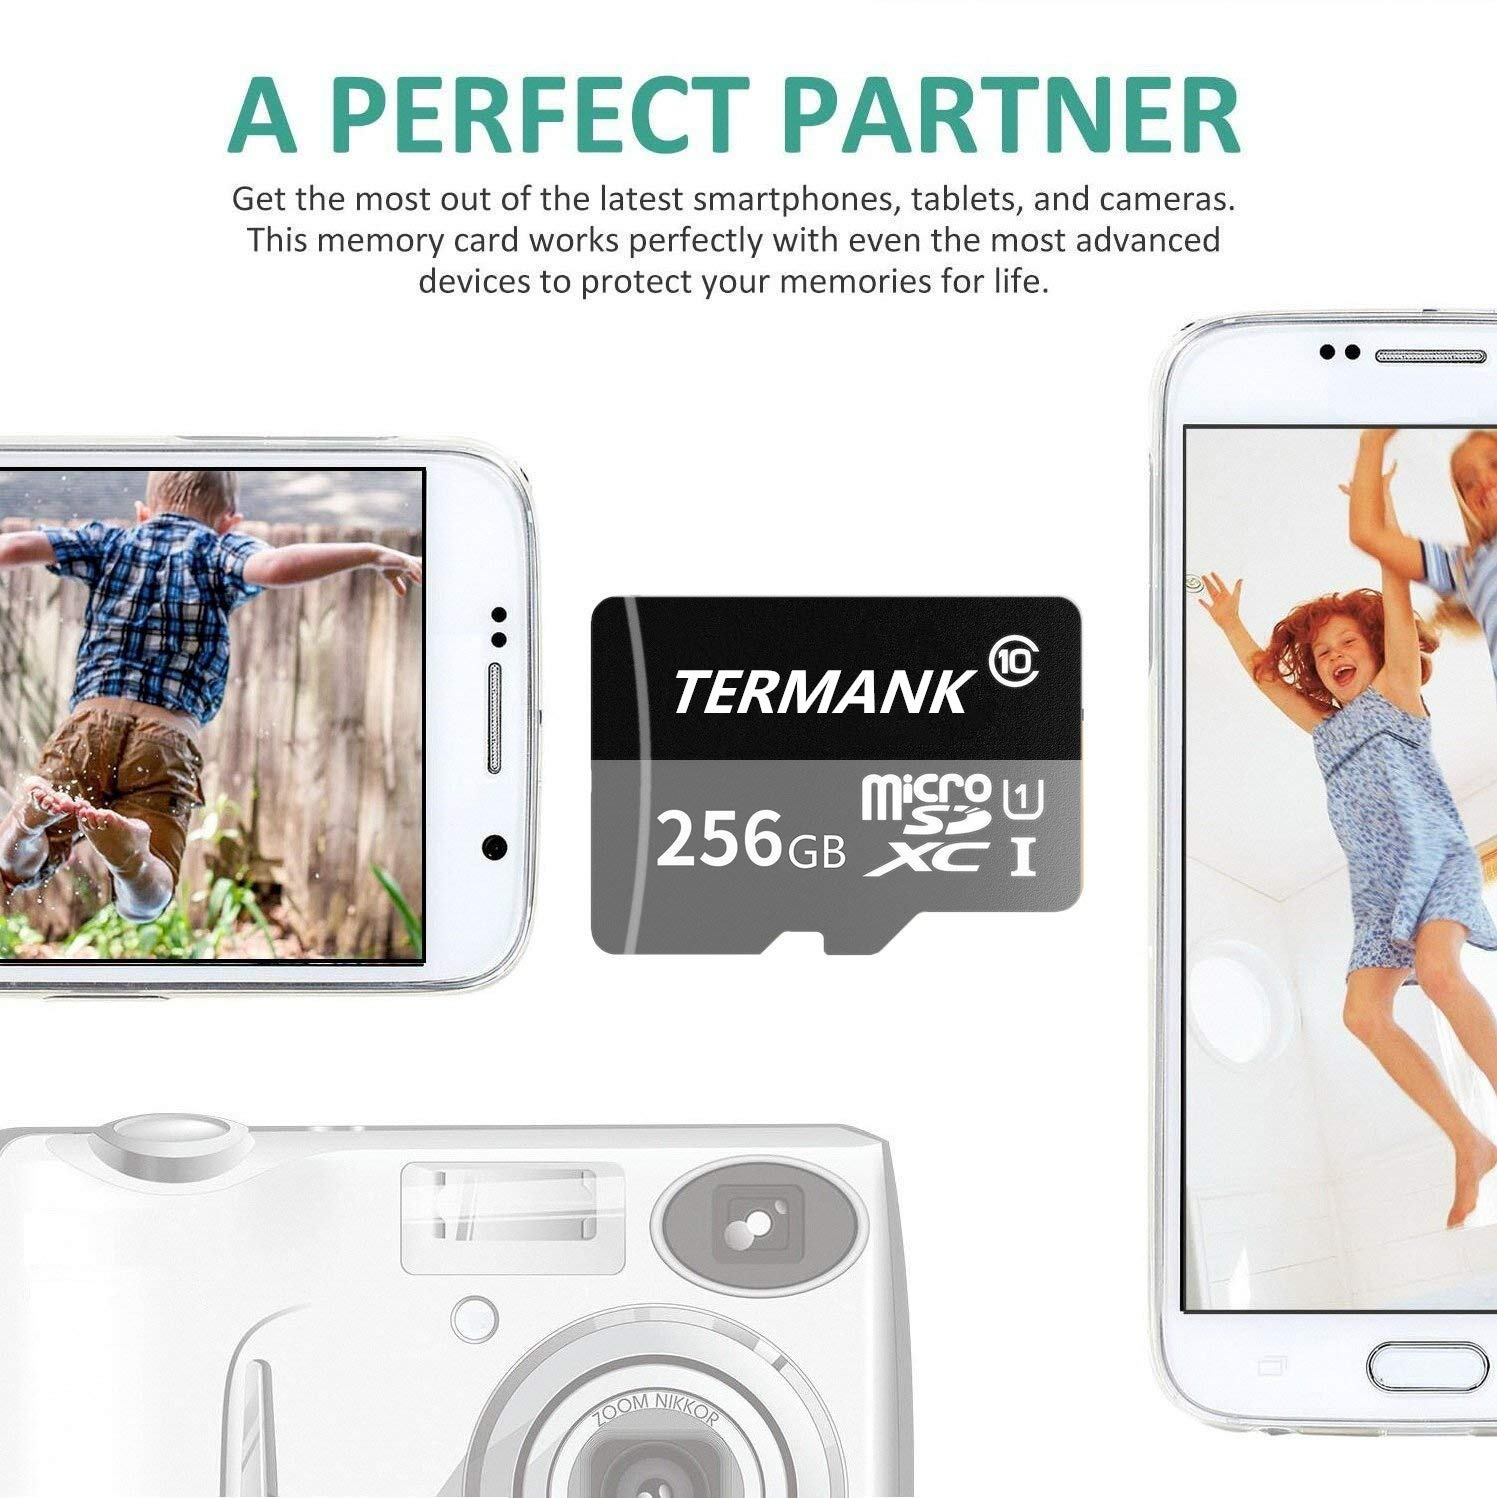 TERMANK 256GB Micro SD Card Memory Card with Free Adapter, High Speed Class 10 SDXC Card for Memory Expansion